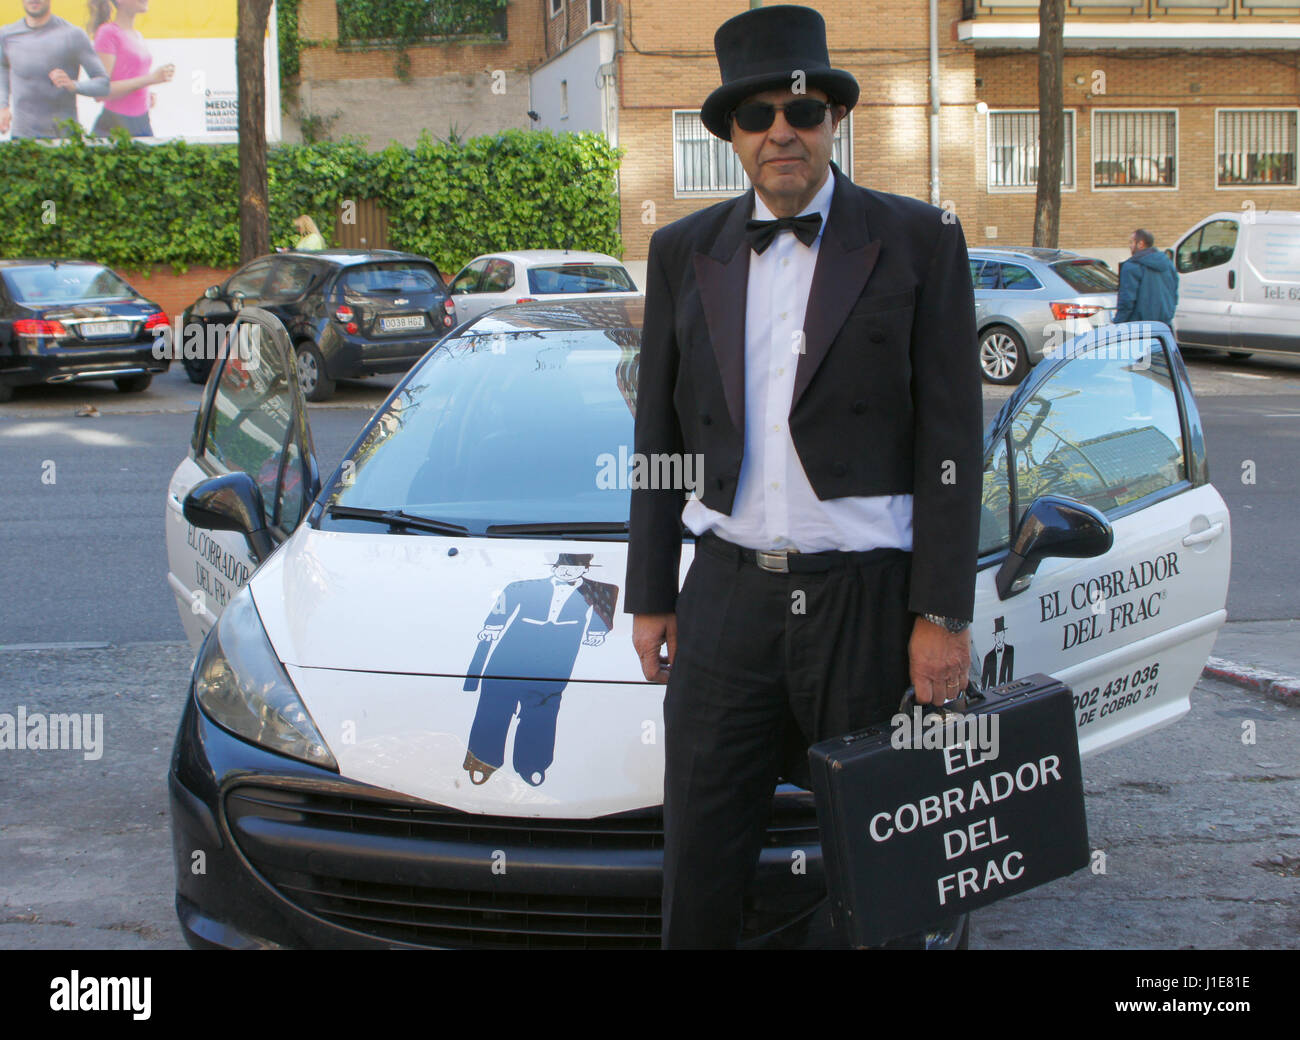 Madrid, Spain. 03rd Apr, 2017. Debt-collector Pedro Dediós stands dressed in his working clothes next to his - Stock Image